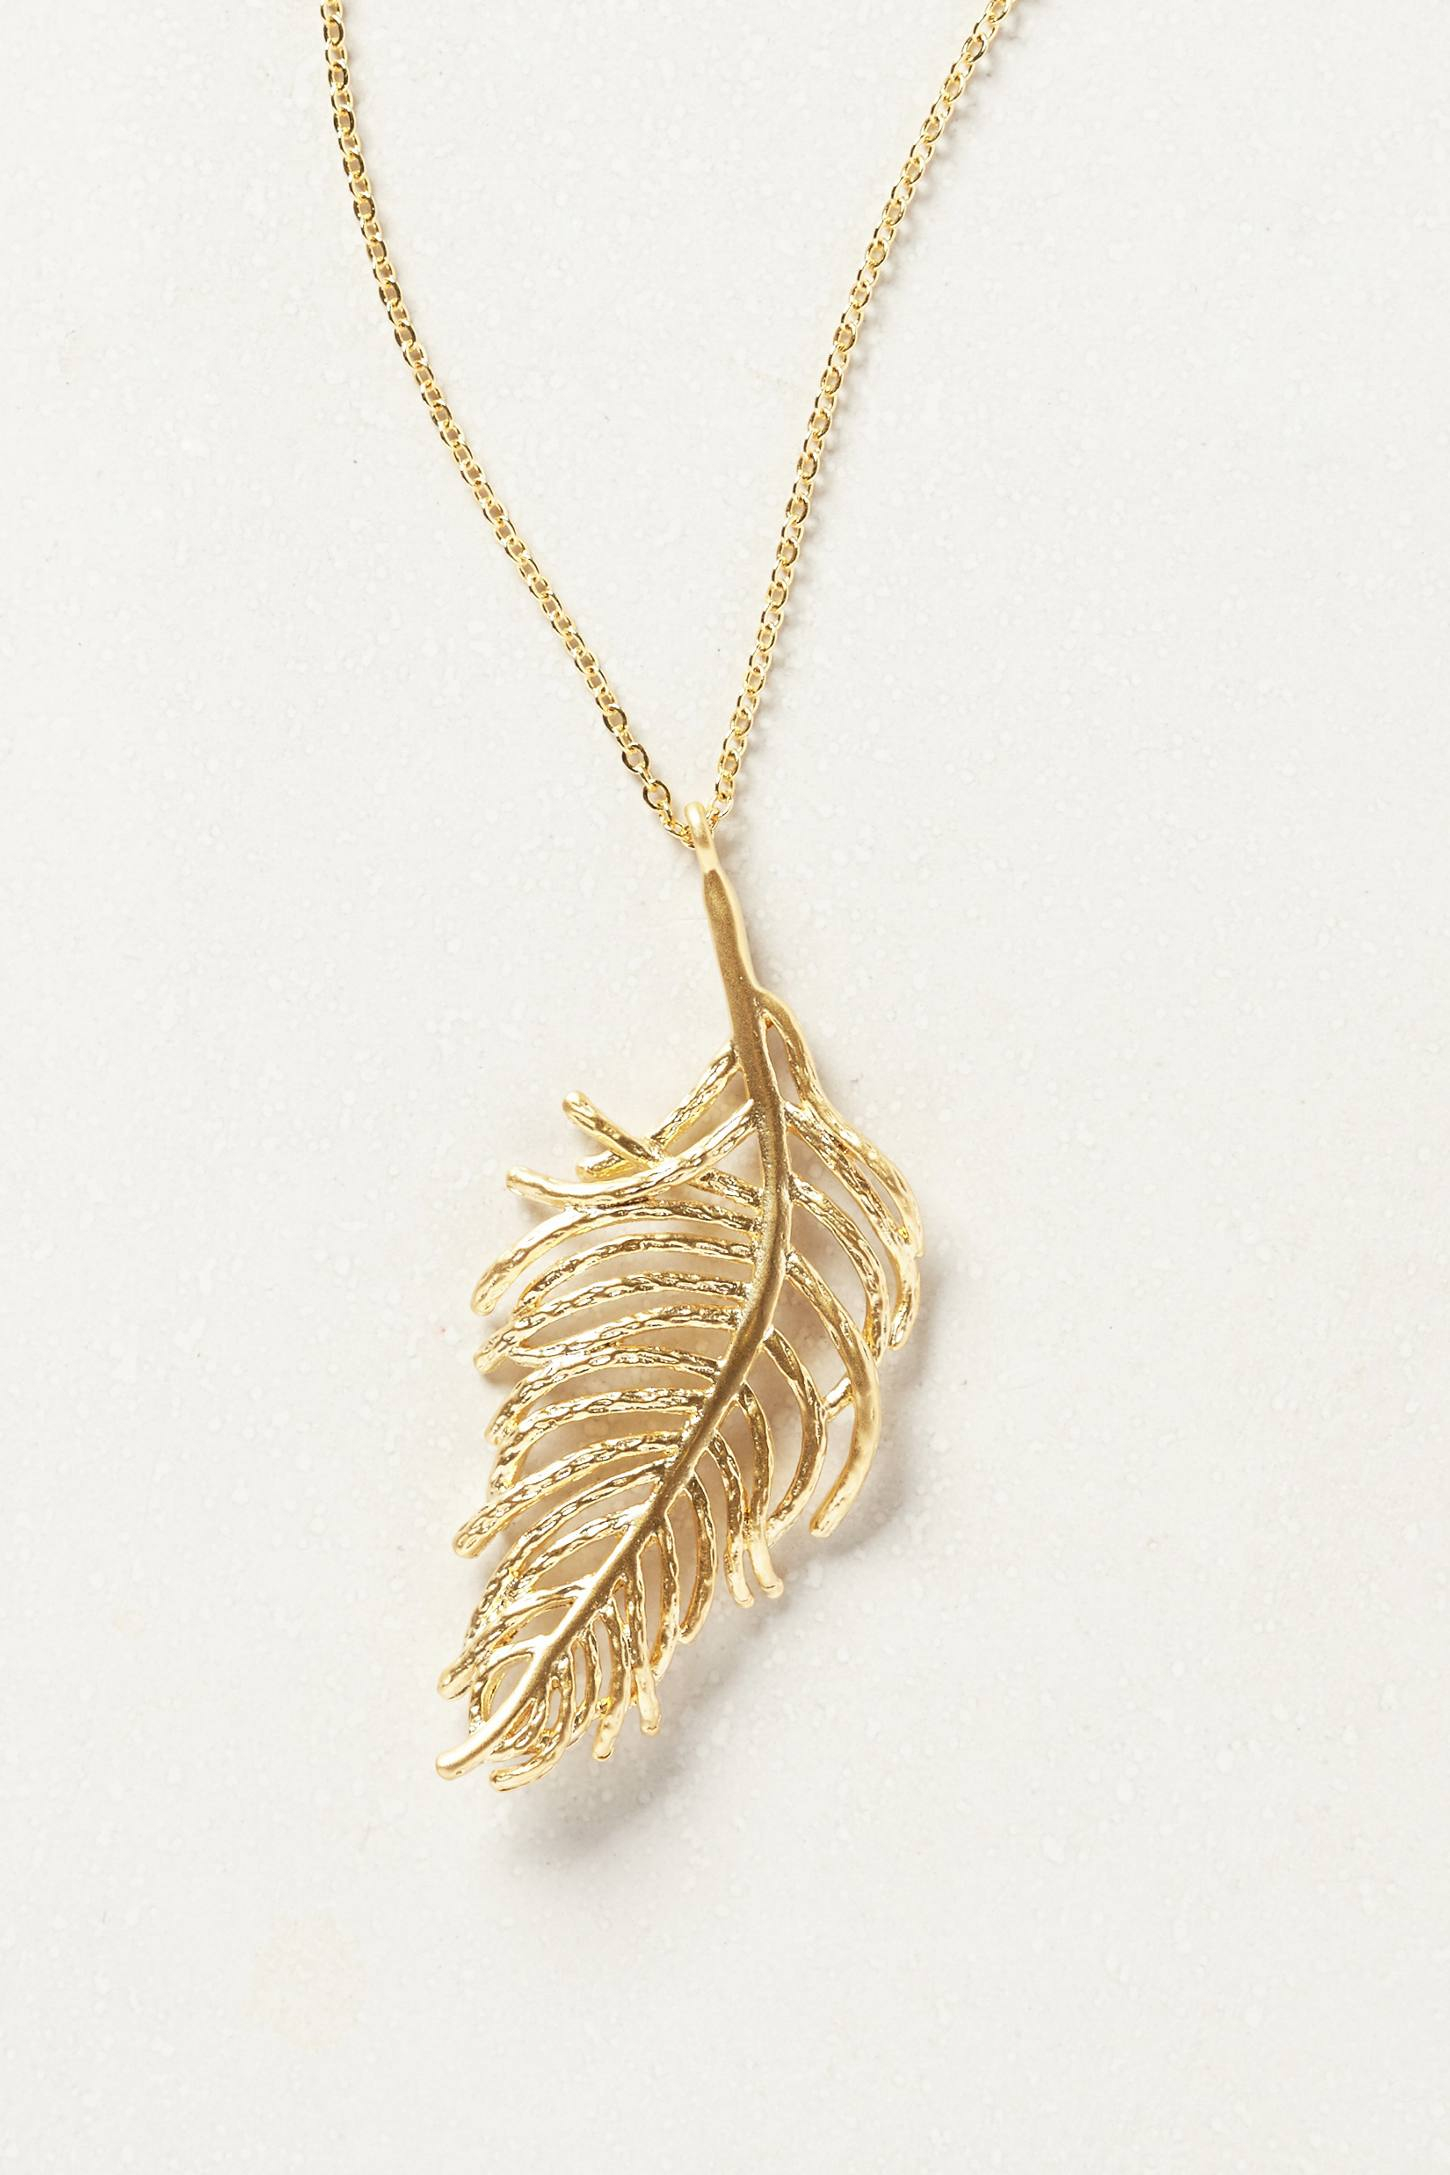 Lyst Anthropologie Golden Feather Necklace in Metallic